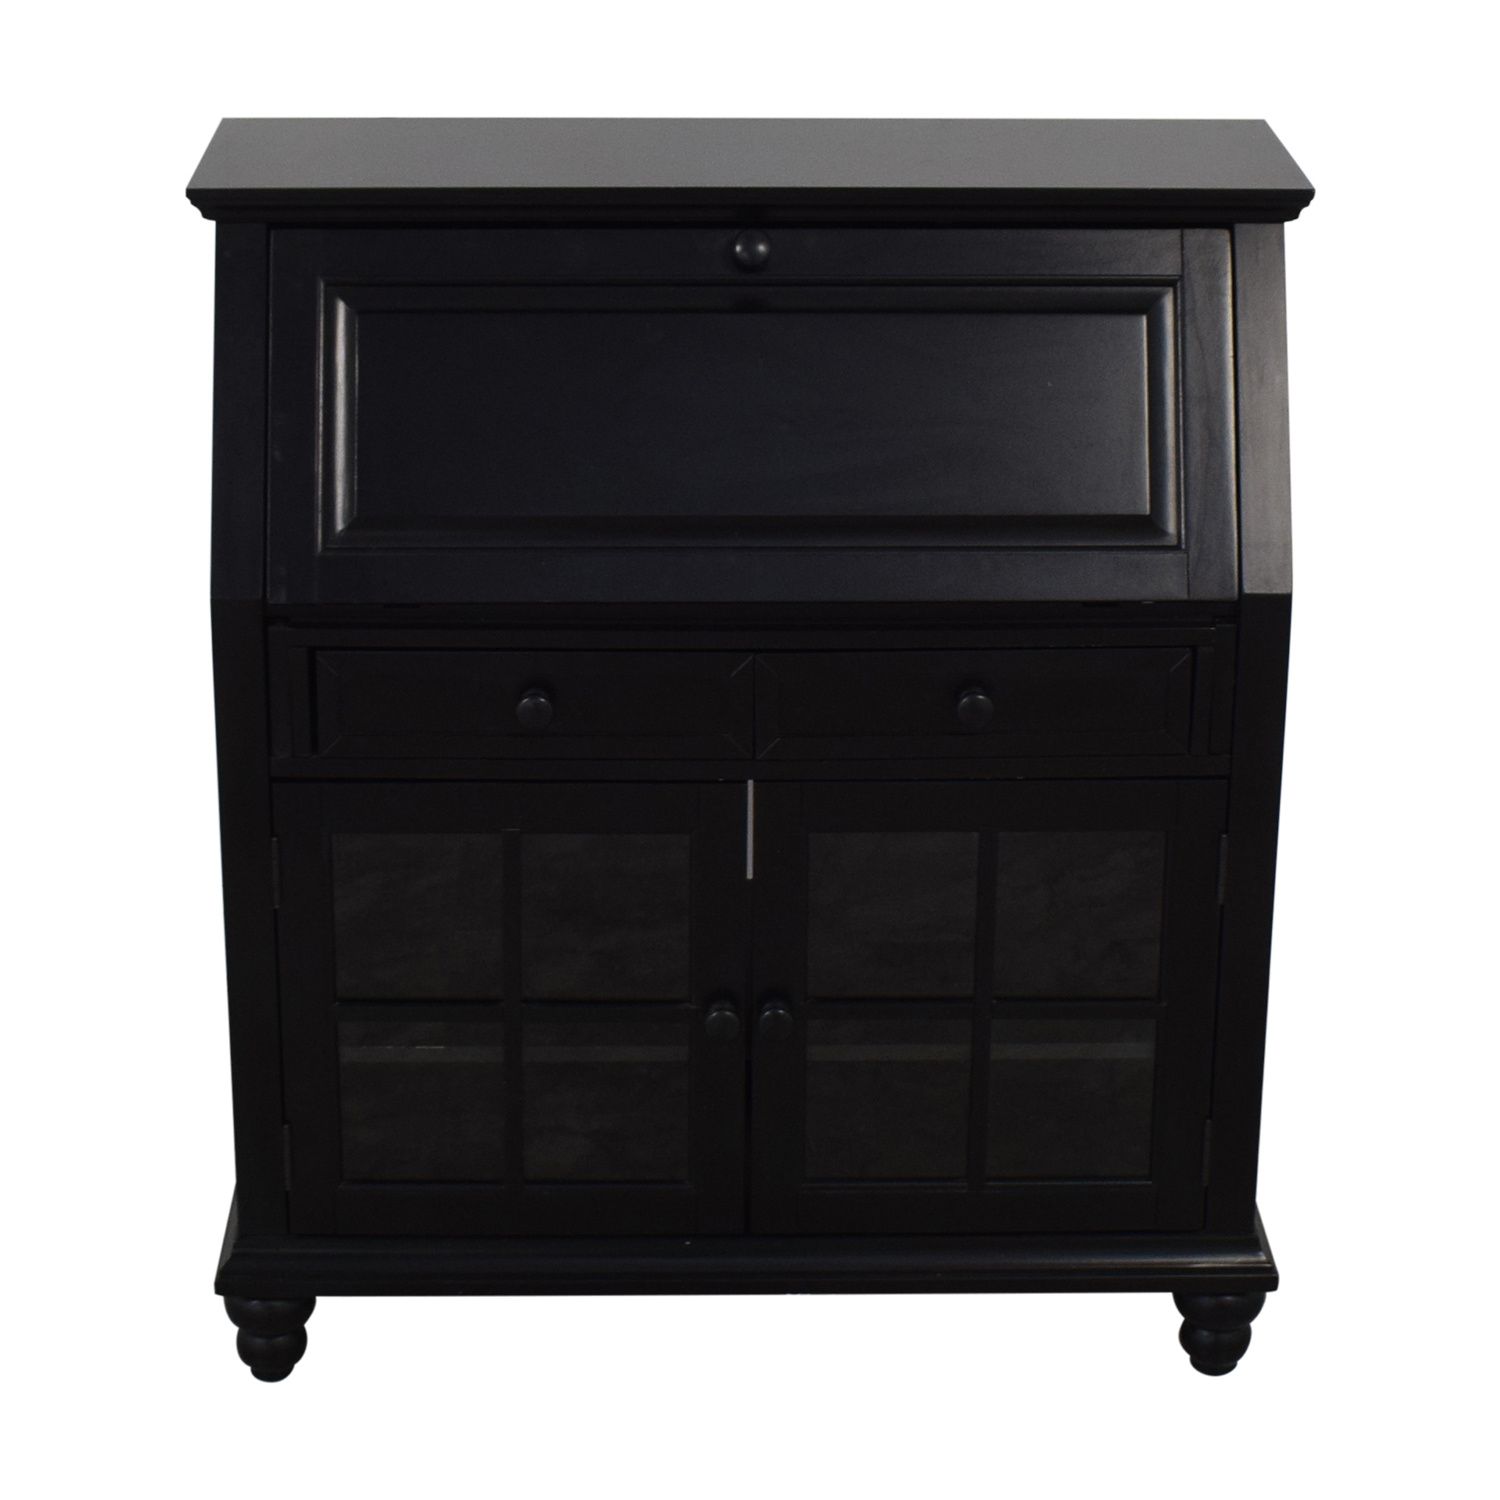 Hillsdale Furniture Hillsdale Furniture Secretary Desk